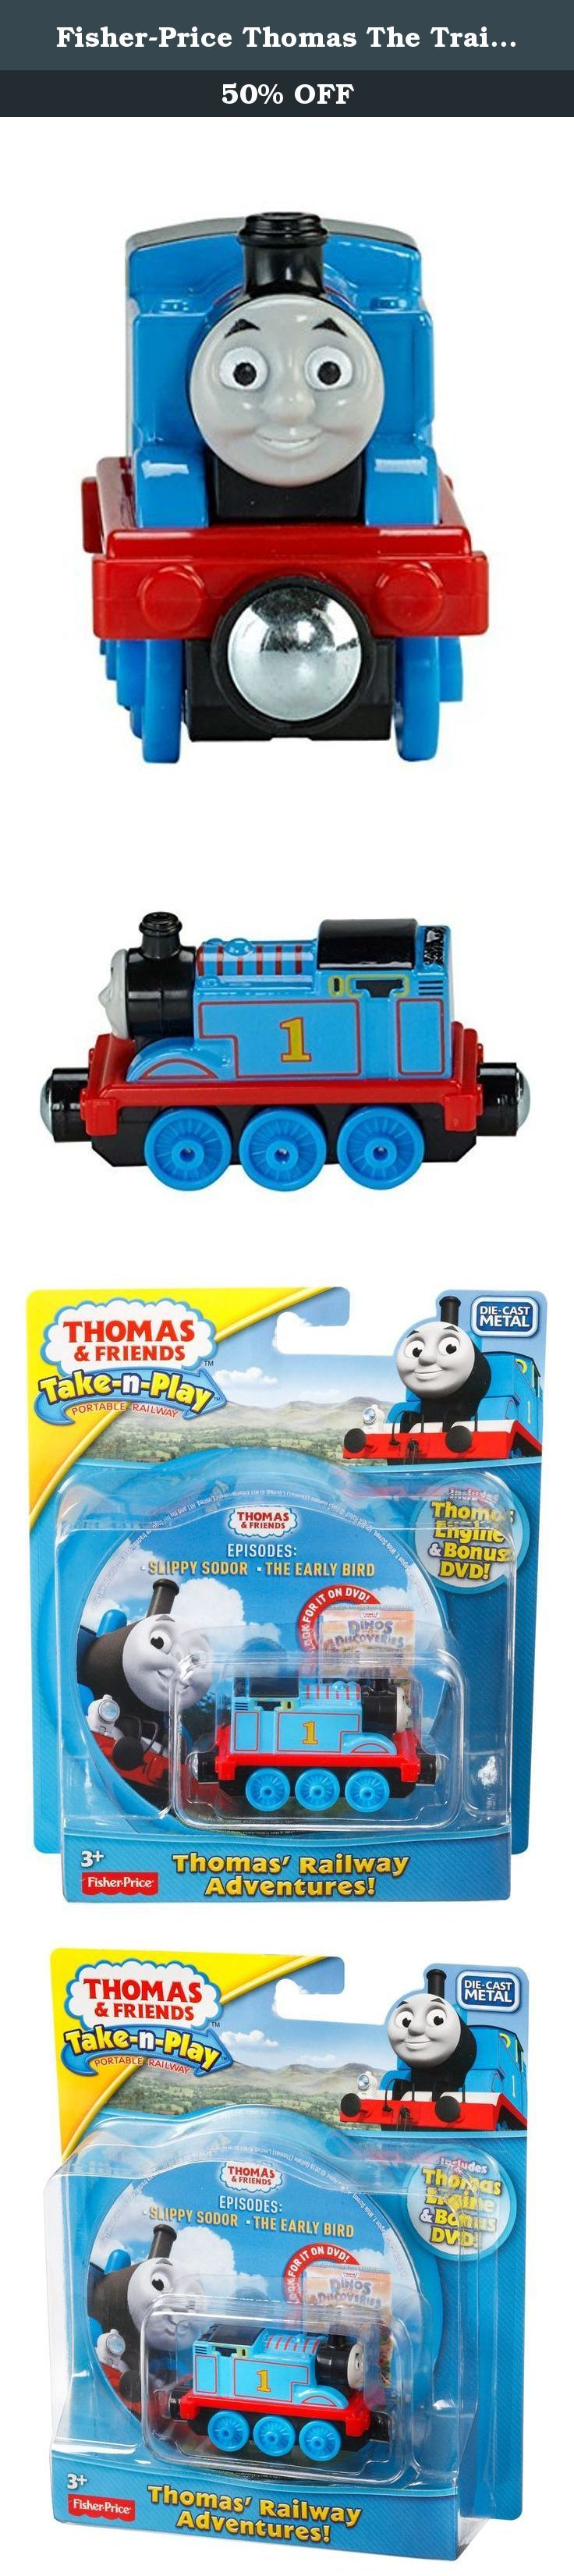 Fisher-Price Thomas The Train Take-N-Play Railway Stories. A special giftset featuring a small Take-n-Play Thomas die-cast engine and a Thomas & Friends DVD featuring two of the most action-packed, fun-filled episodes from Thomas' popular TV show! Engine can be used with any Take-n-Play portable playset (each sold separately and subject to availability).